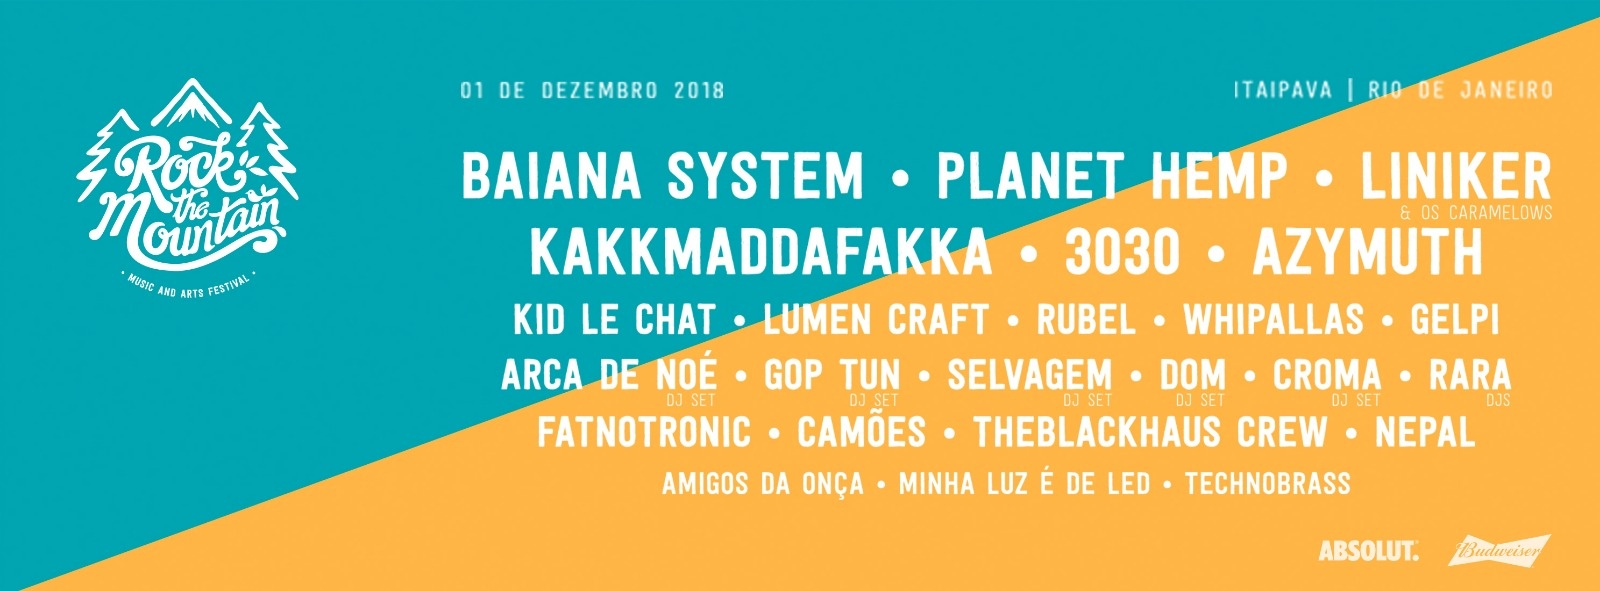 Festival Rock the Mountain 2018 - Itaipava